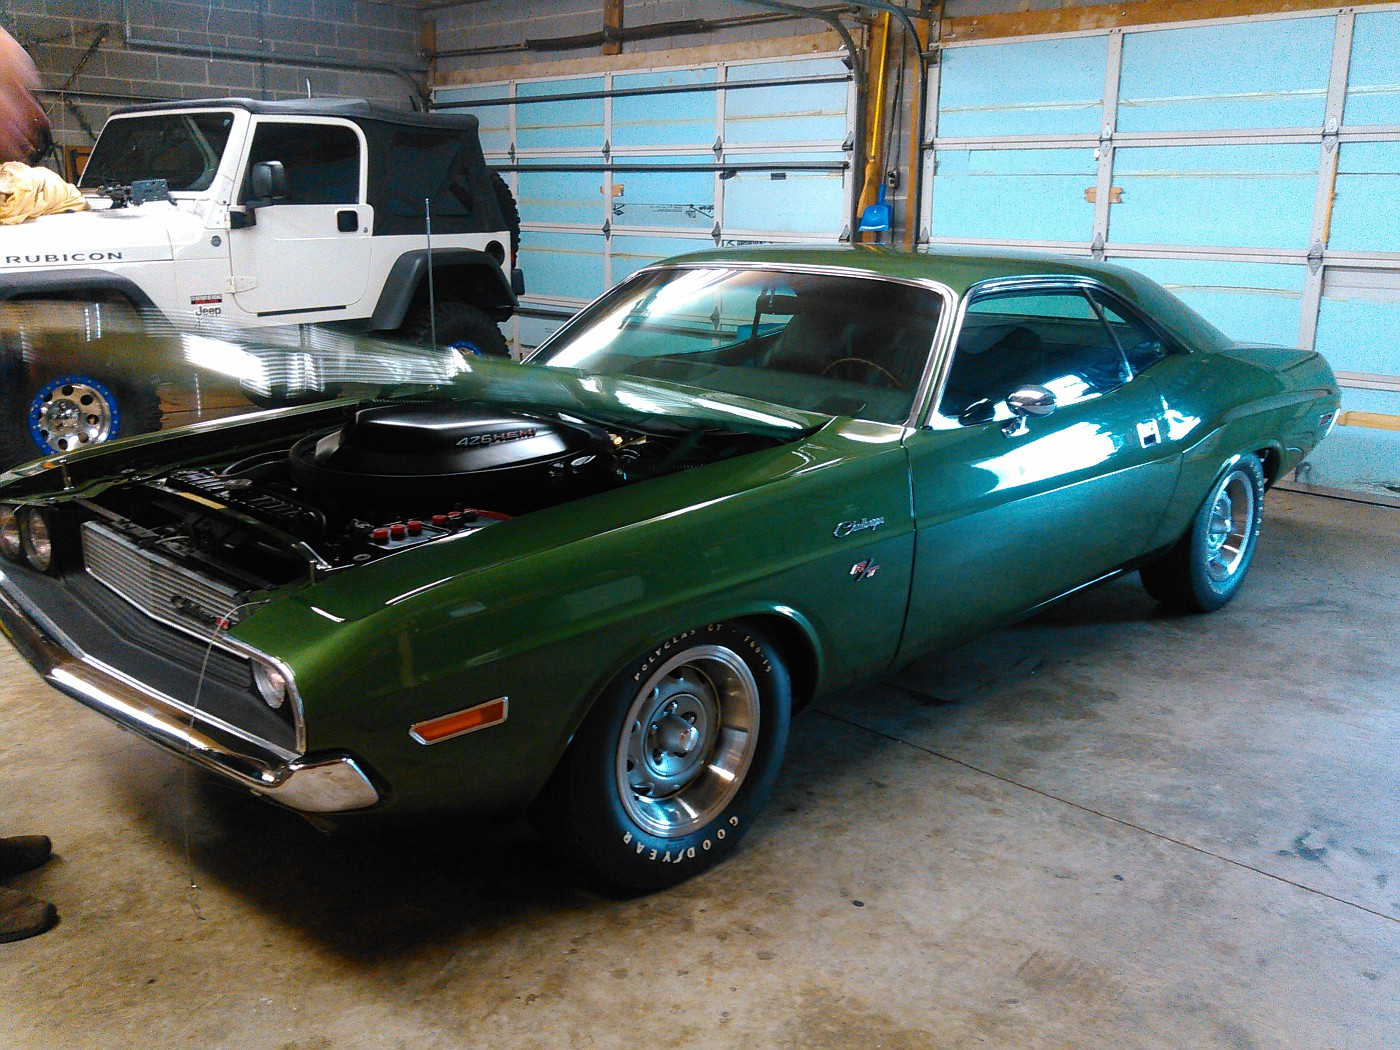 What I got to drool over yesterday at work.... 1971ChallengerRTHEMI003-vi